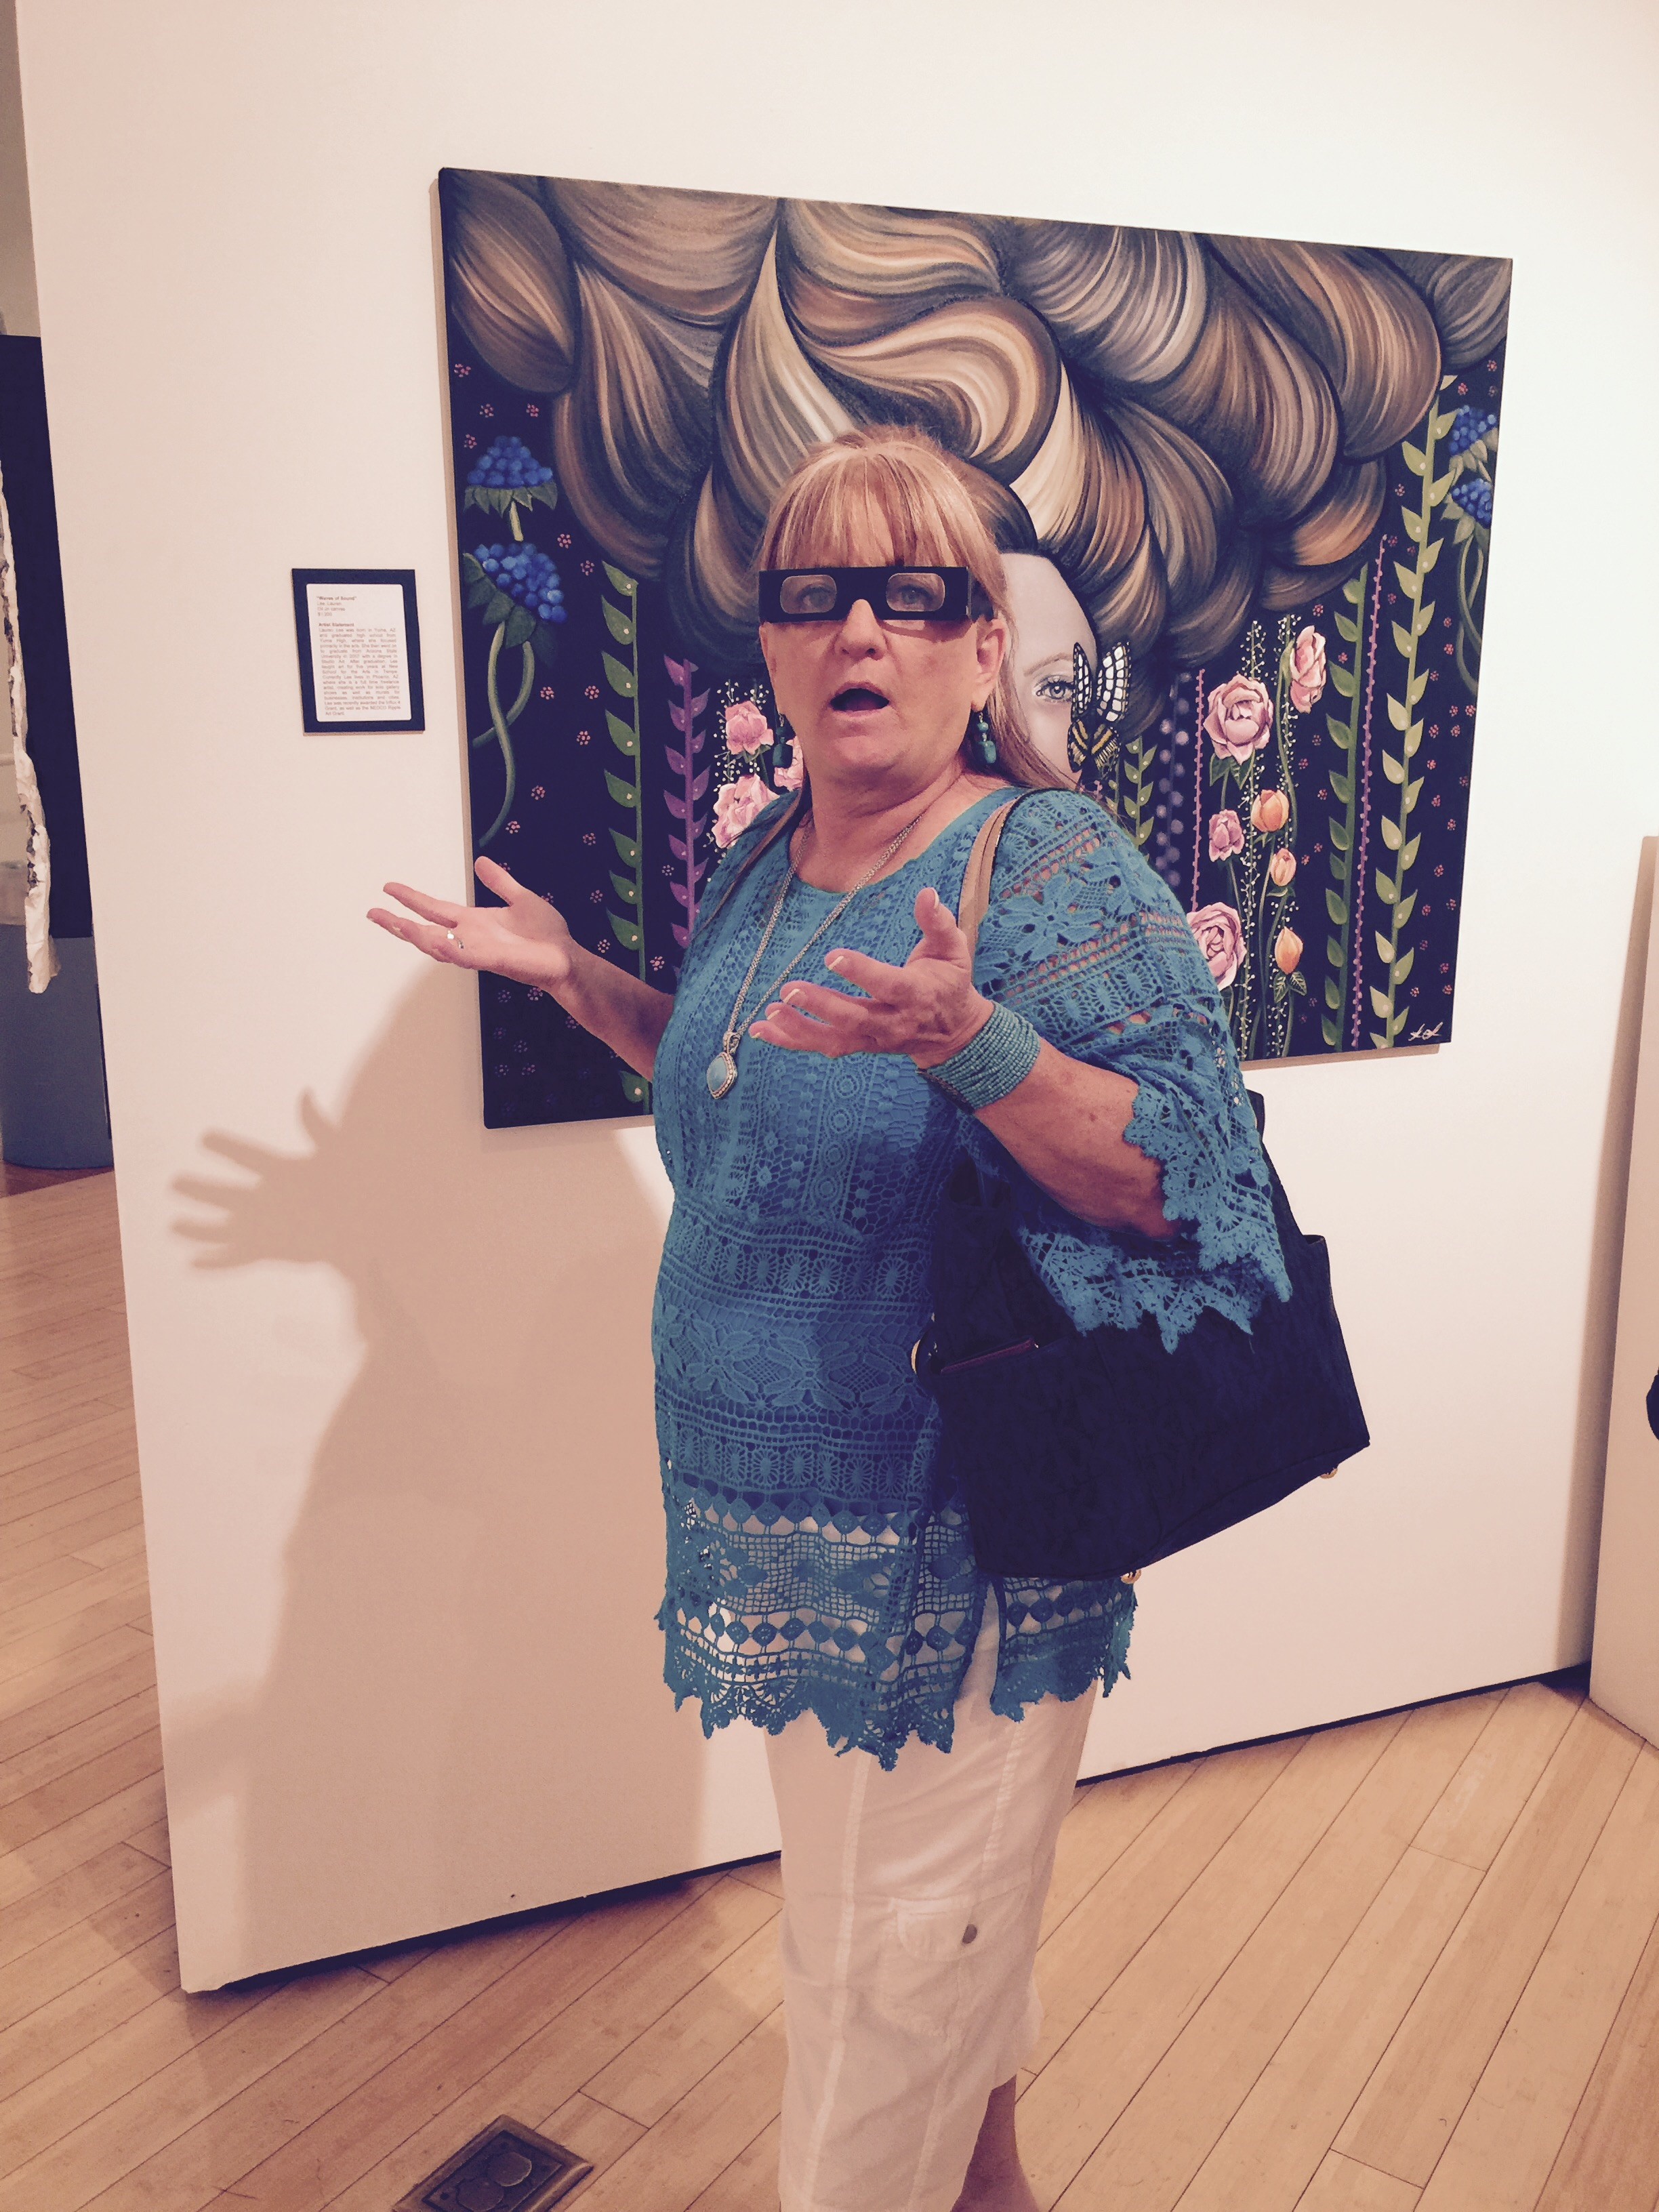 My mom in shock of how my painting looks in 3D, lol. Love this photo.